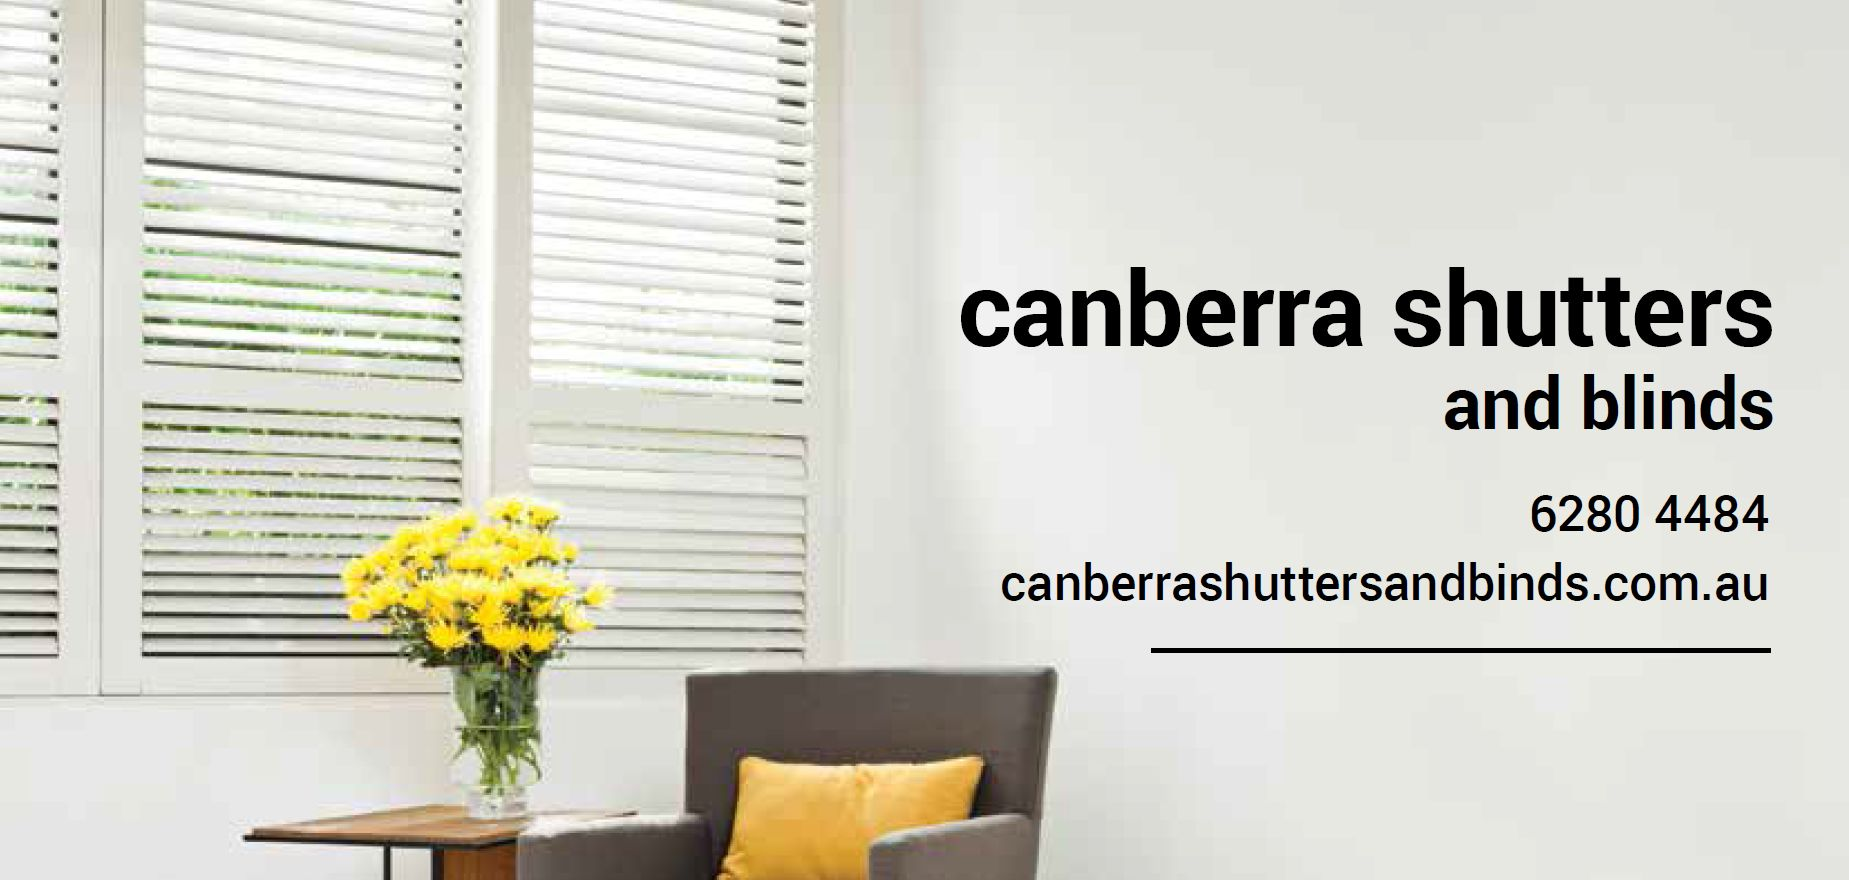 Canberra Shutters and Blinds